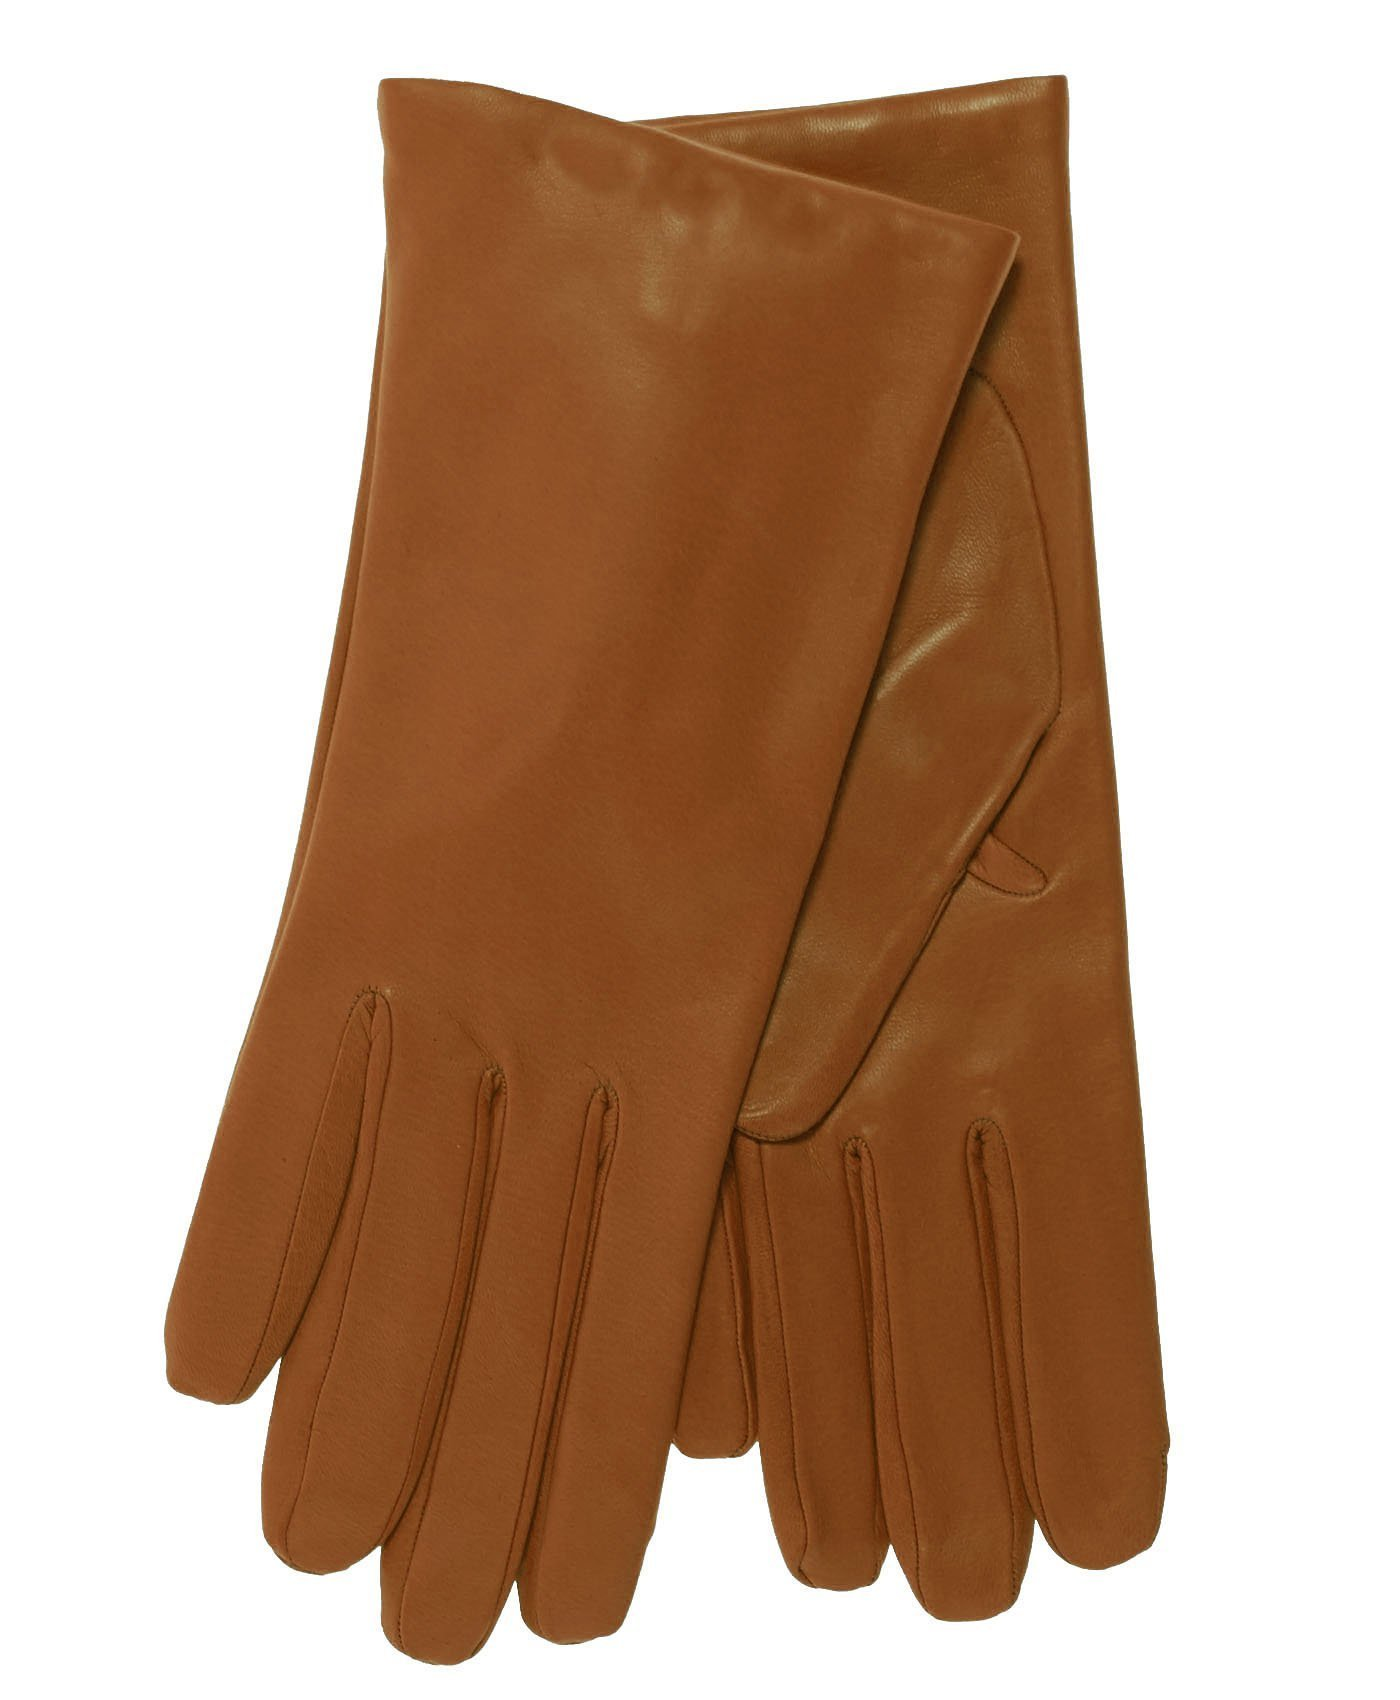 Fratelli Orsini Everyday Women's Italian Cashmere Lined Leather Gloves Size 7 1/2 Color Cognac by Fratelli Orsini Everyday